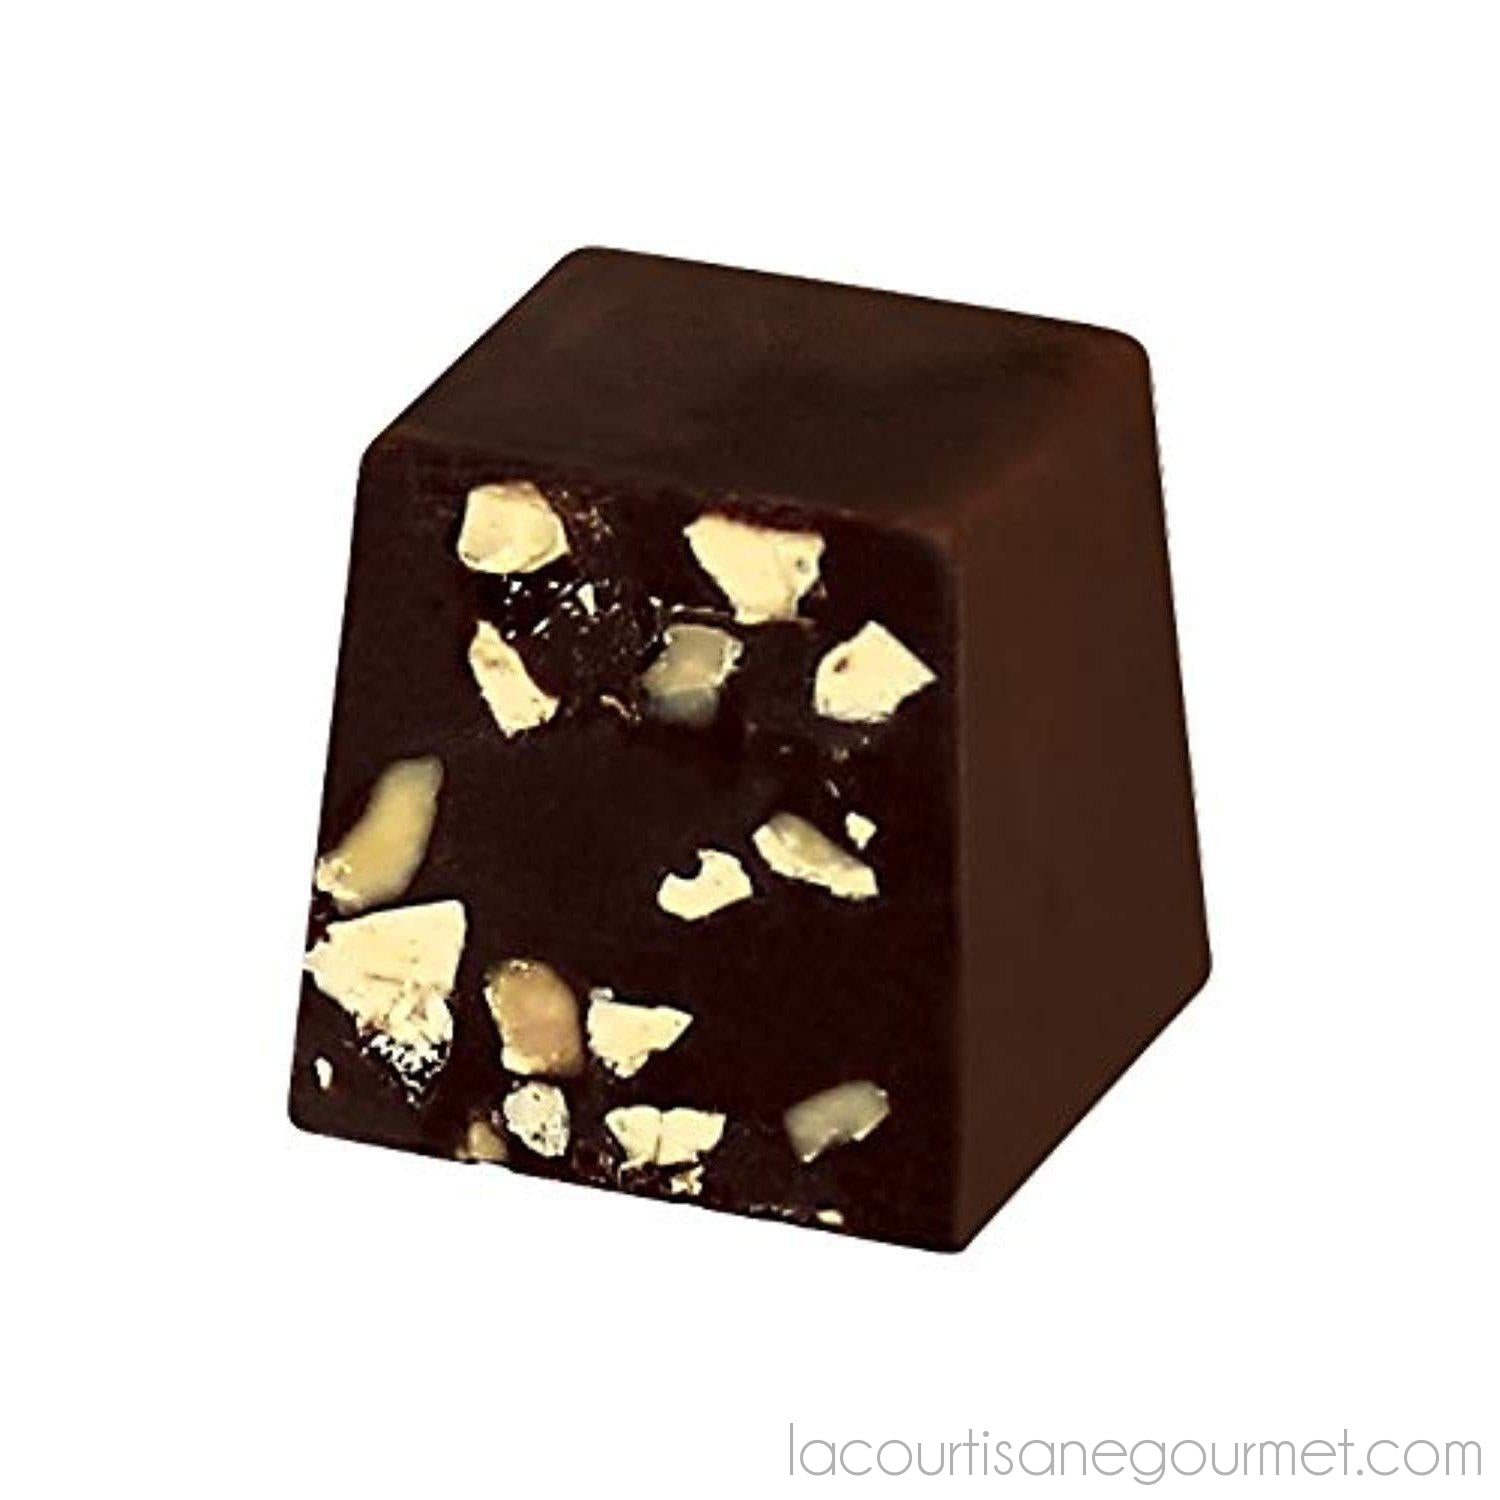 Maxim'S Paris Heart Tin (Dark Chocolate Almonds & Honey - Dark) - - La Courtisane Gourmet Food